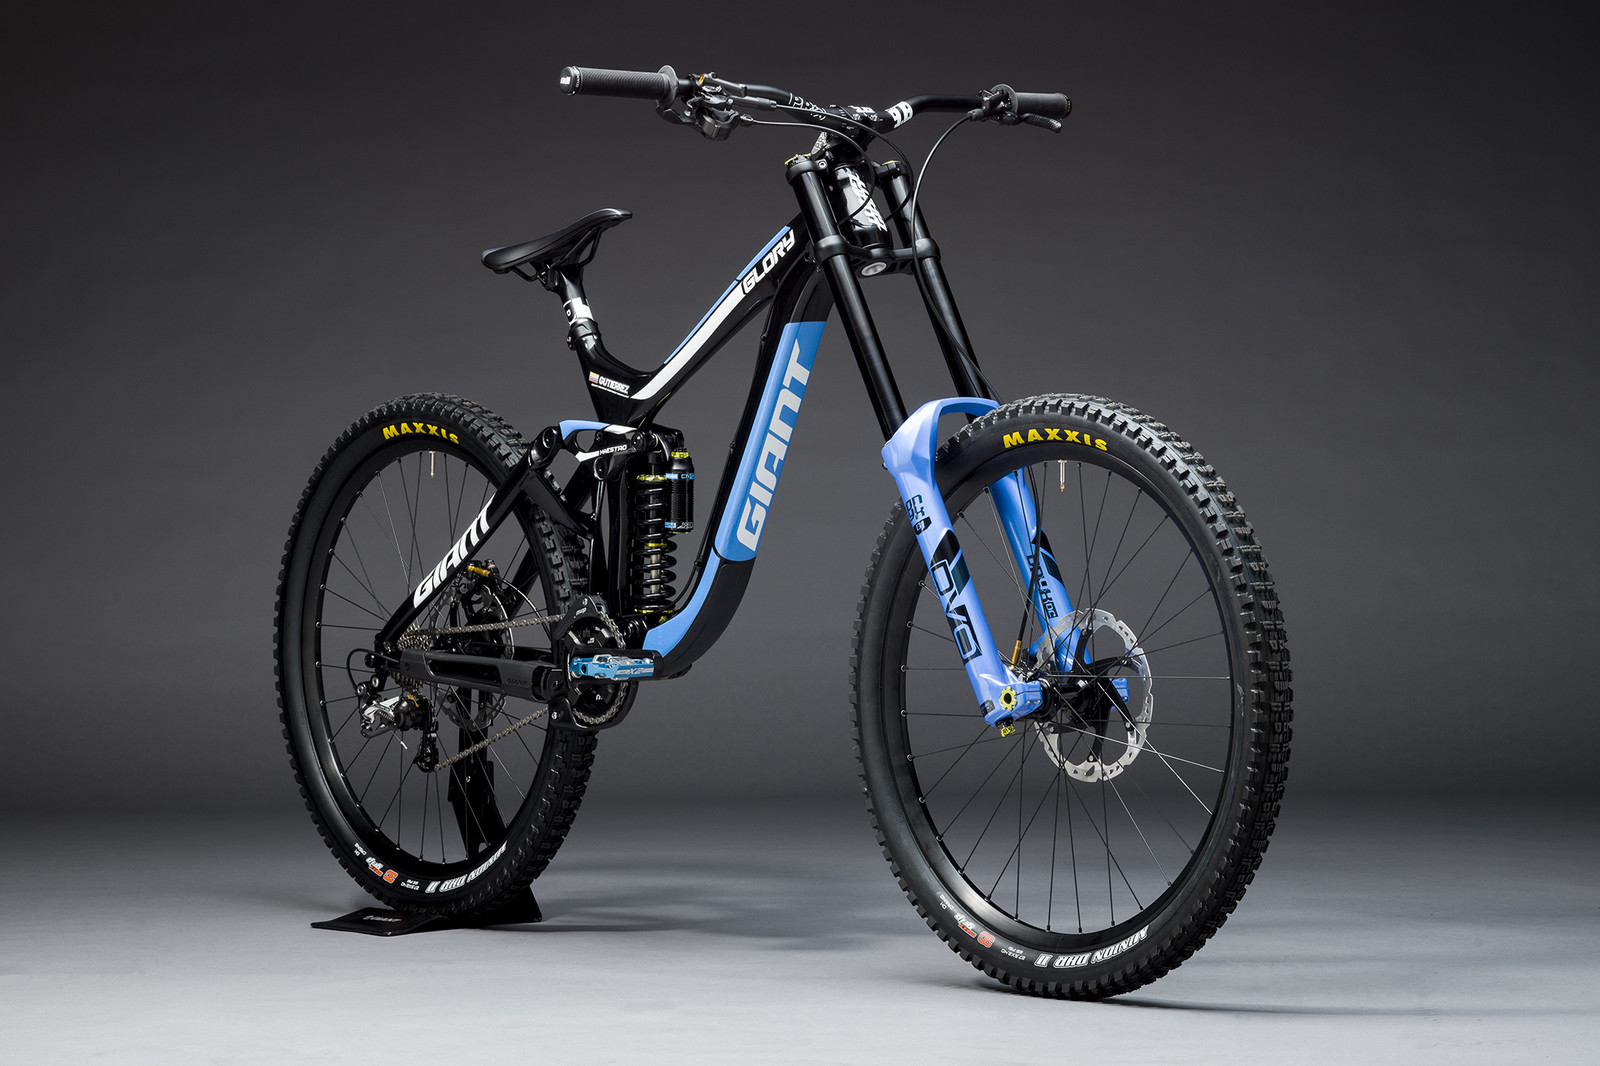 2018 Giant Factory Off-Road Team Bikes - Marcelo Gutierrez's Giant Glory Advanced - Giant Factory Off-Road Team Bikes - Mountain Biking Pictures - Vital MTB